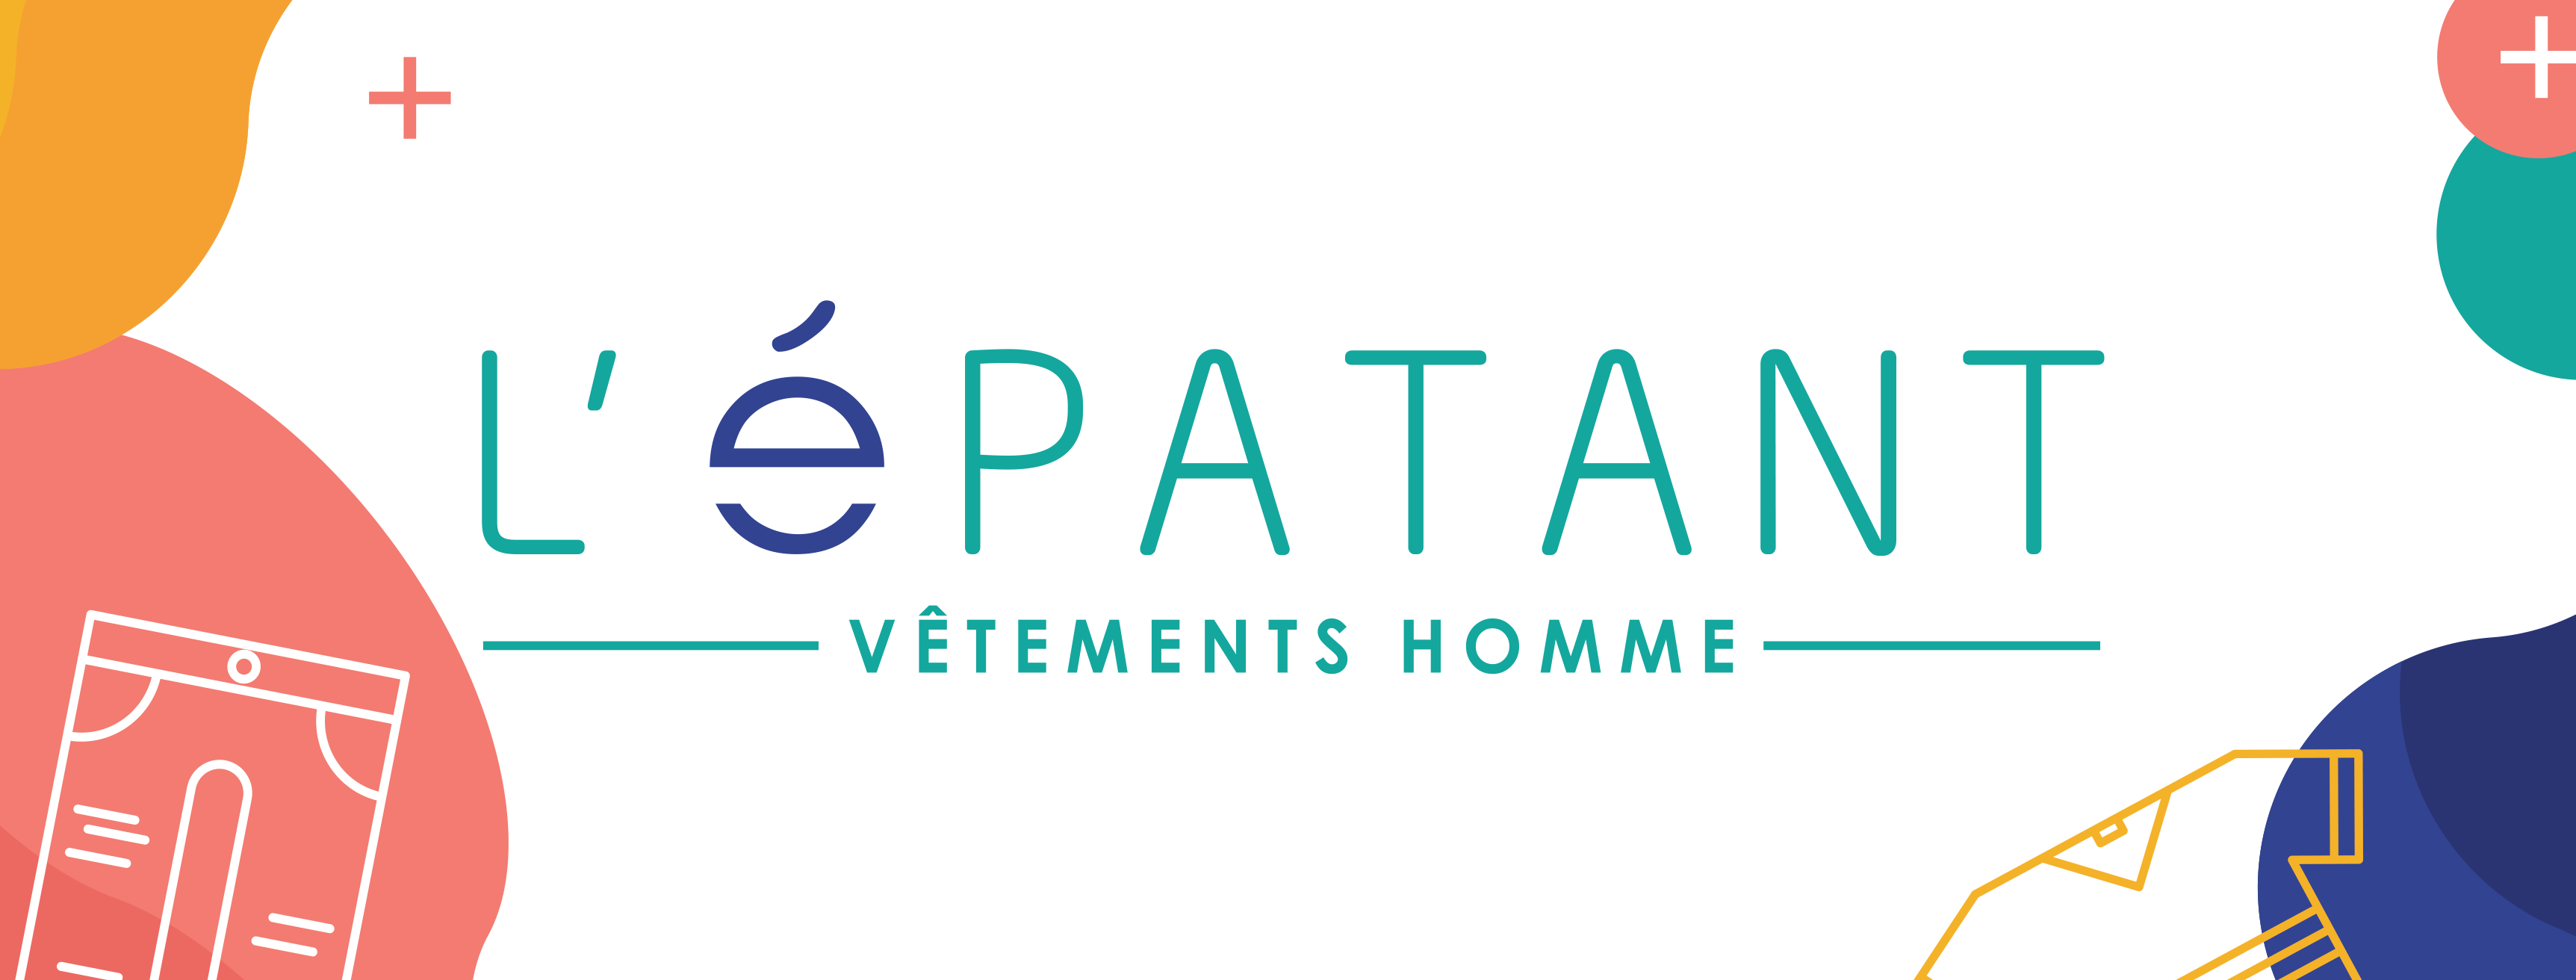 BOUTIQUE L'EPATANT